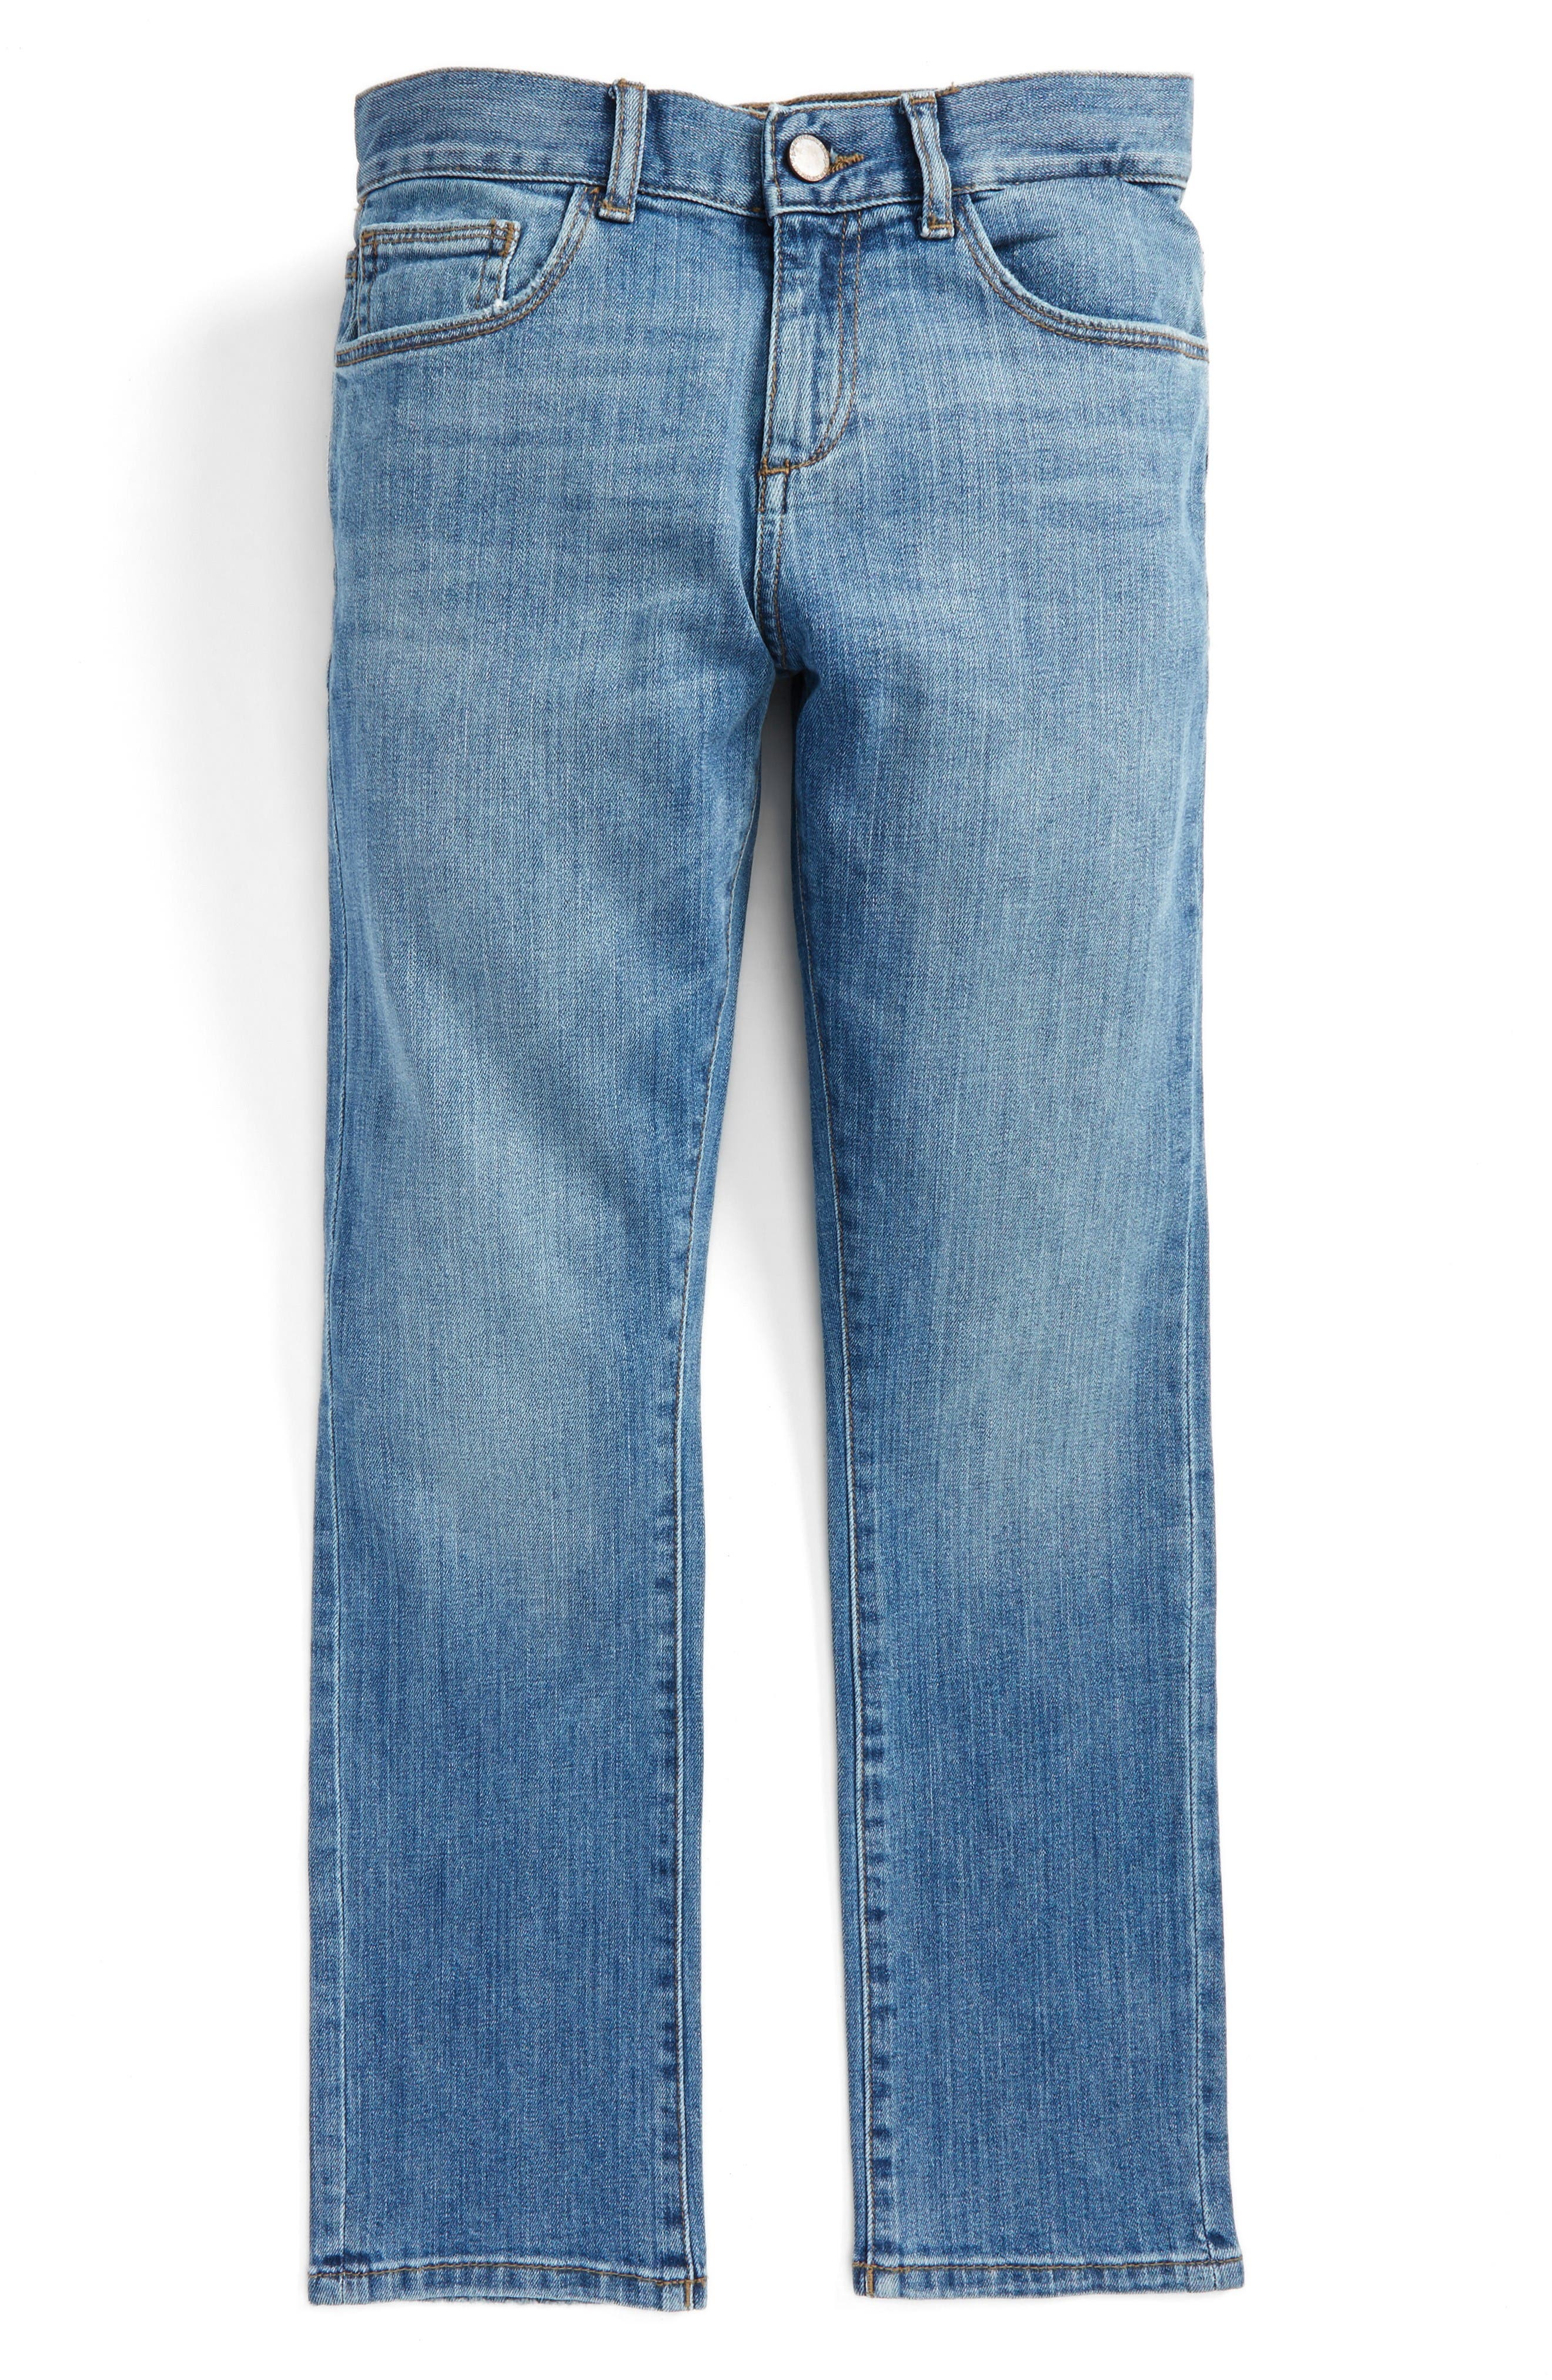 Brady Slim Fit Jeans,                         Main,                         color, Rafter